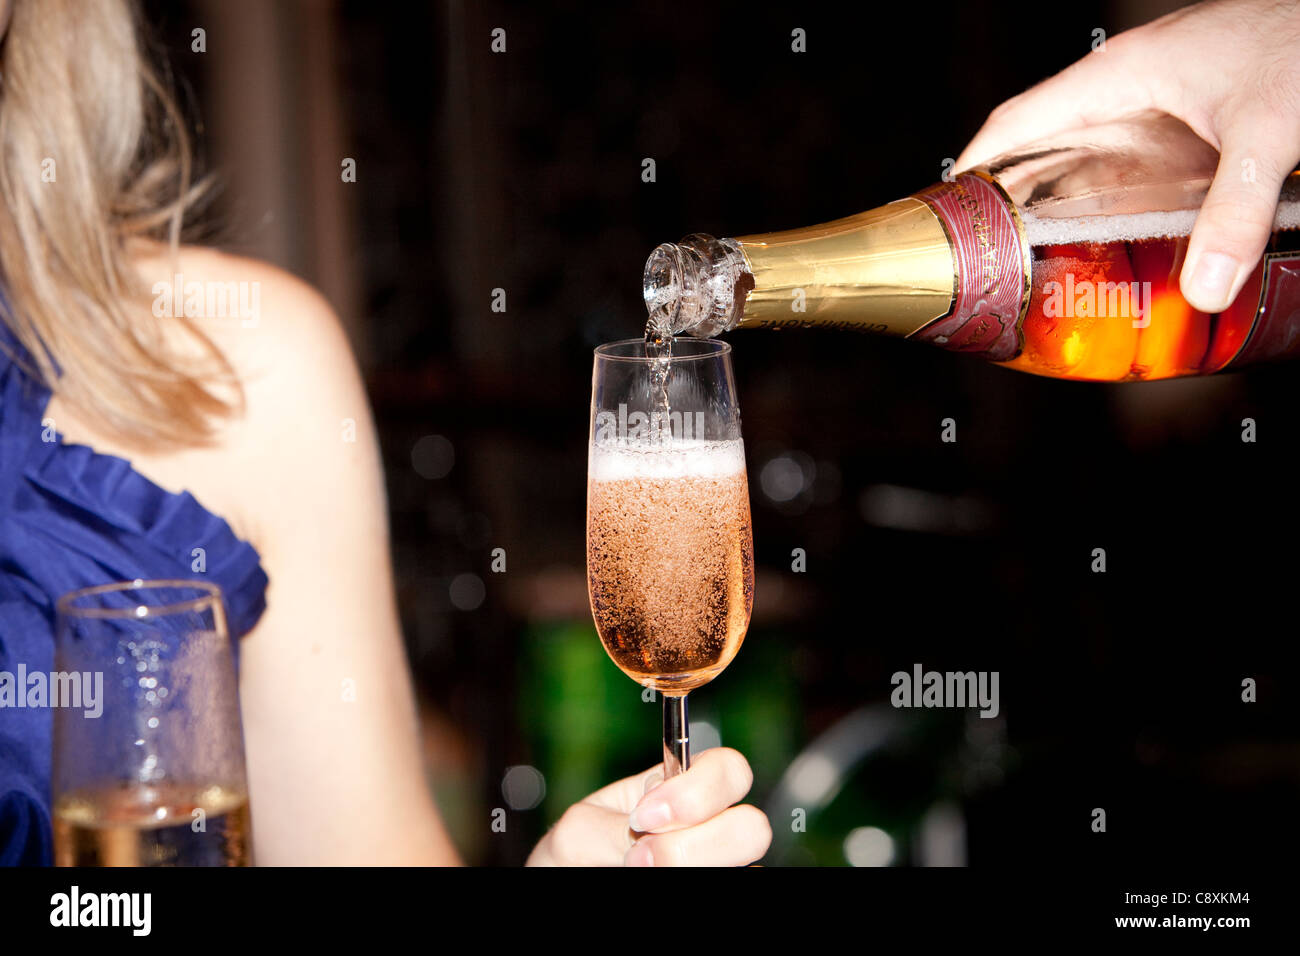 Pouring champagne into glass. - Stock Image